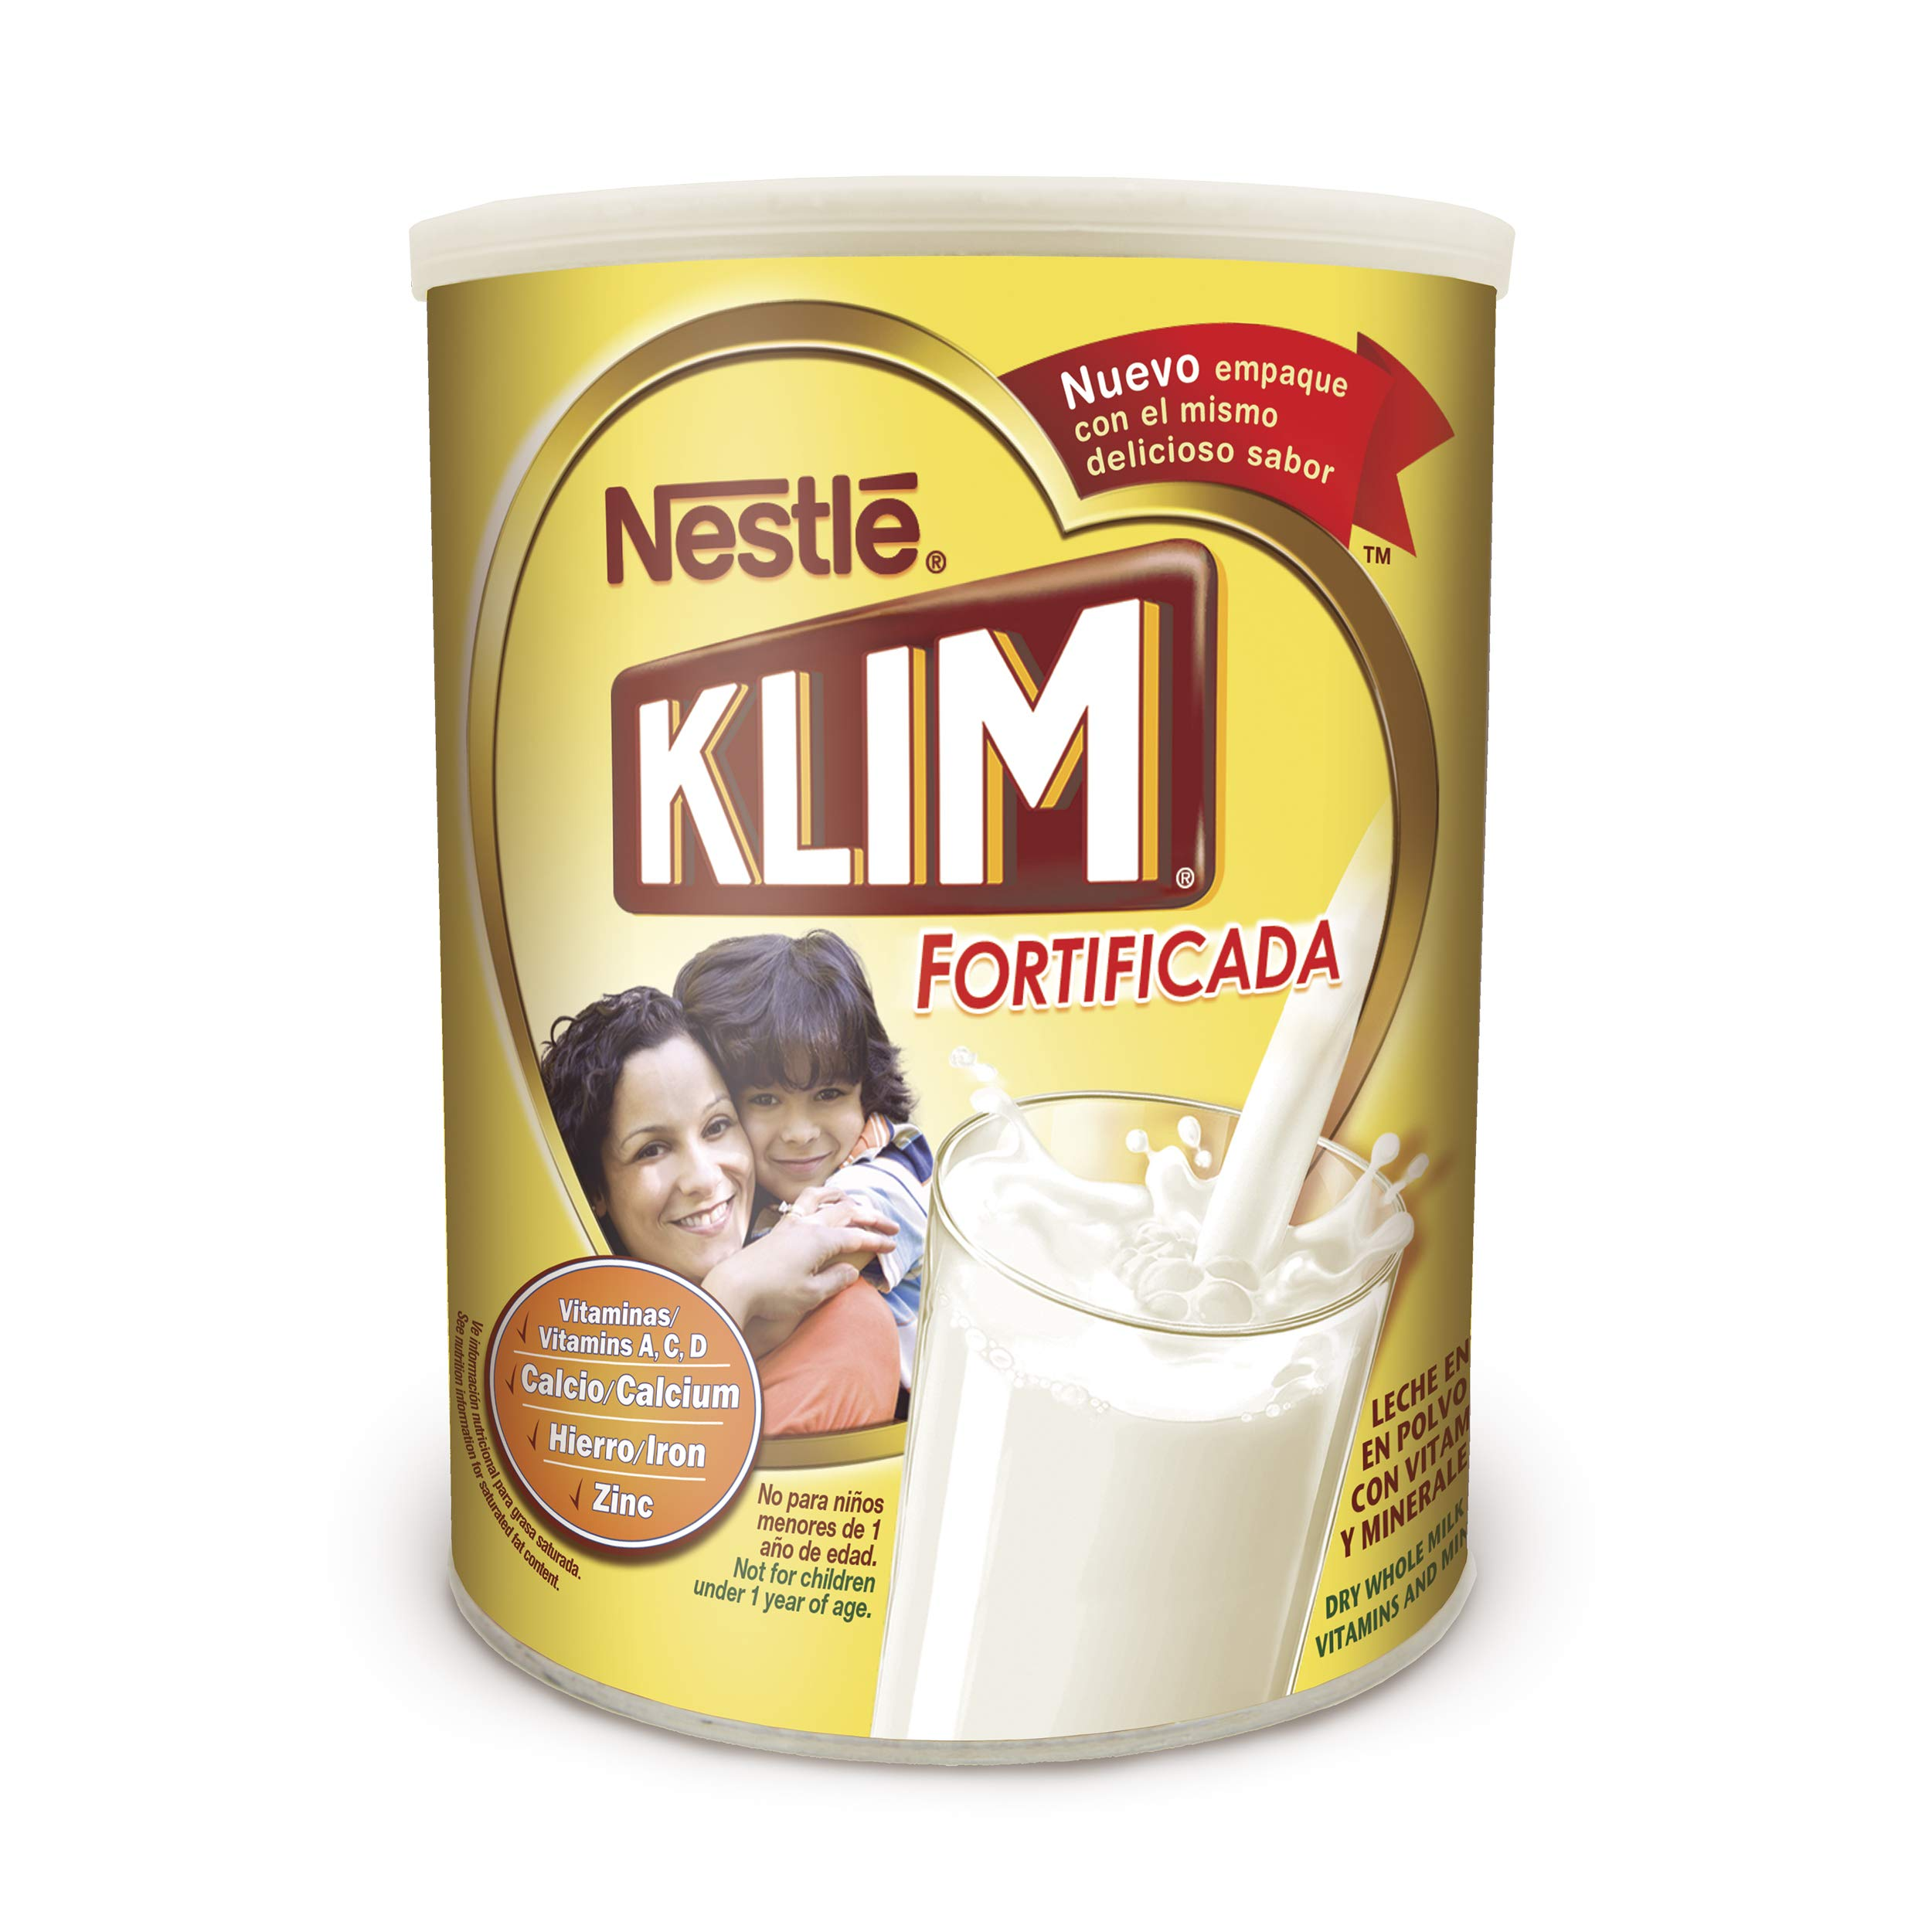 Nestle KLIM Fortificada Dry Whole Milk Powder 56.3 oz. Canister